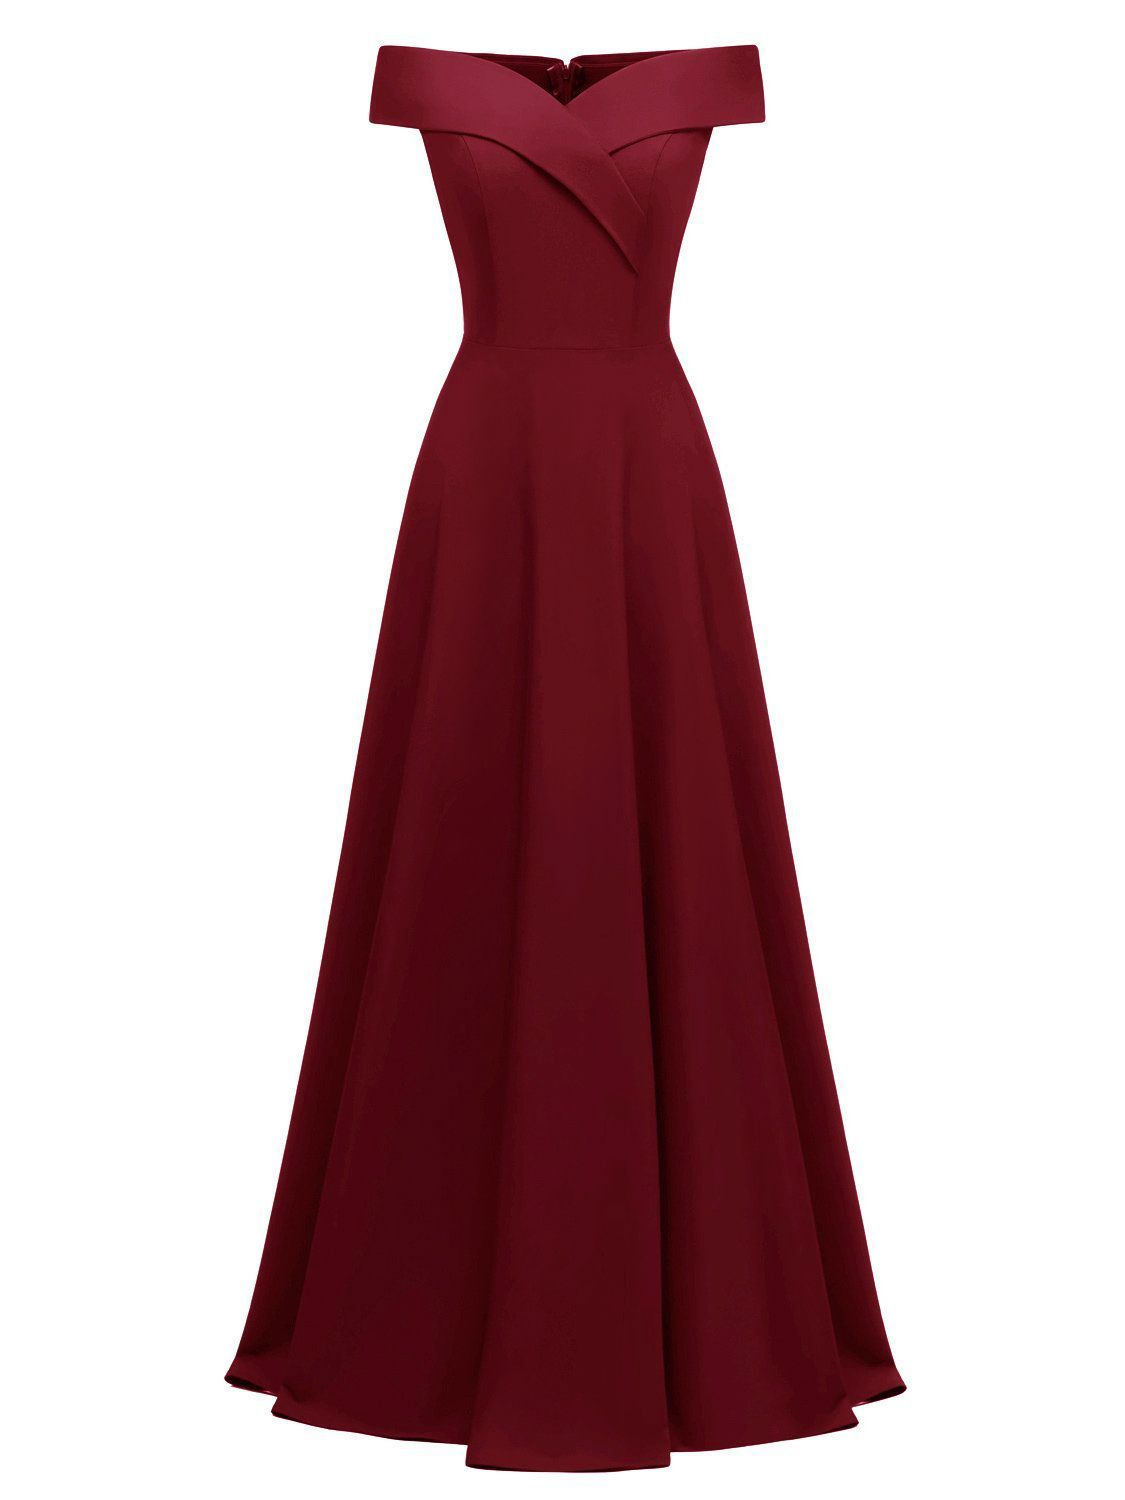 1950s Wine Red Vintage Solid Off Shoulder Long Dress